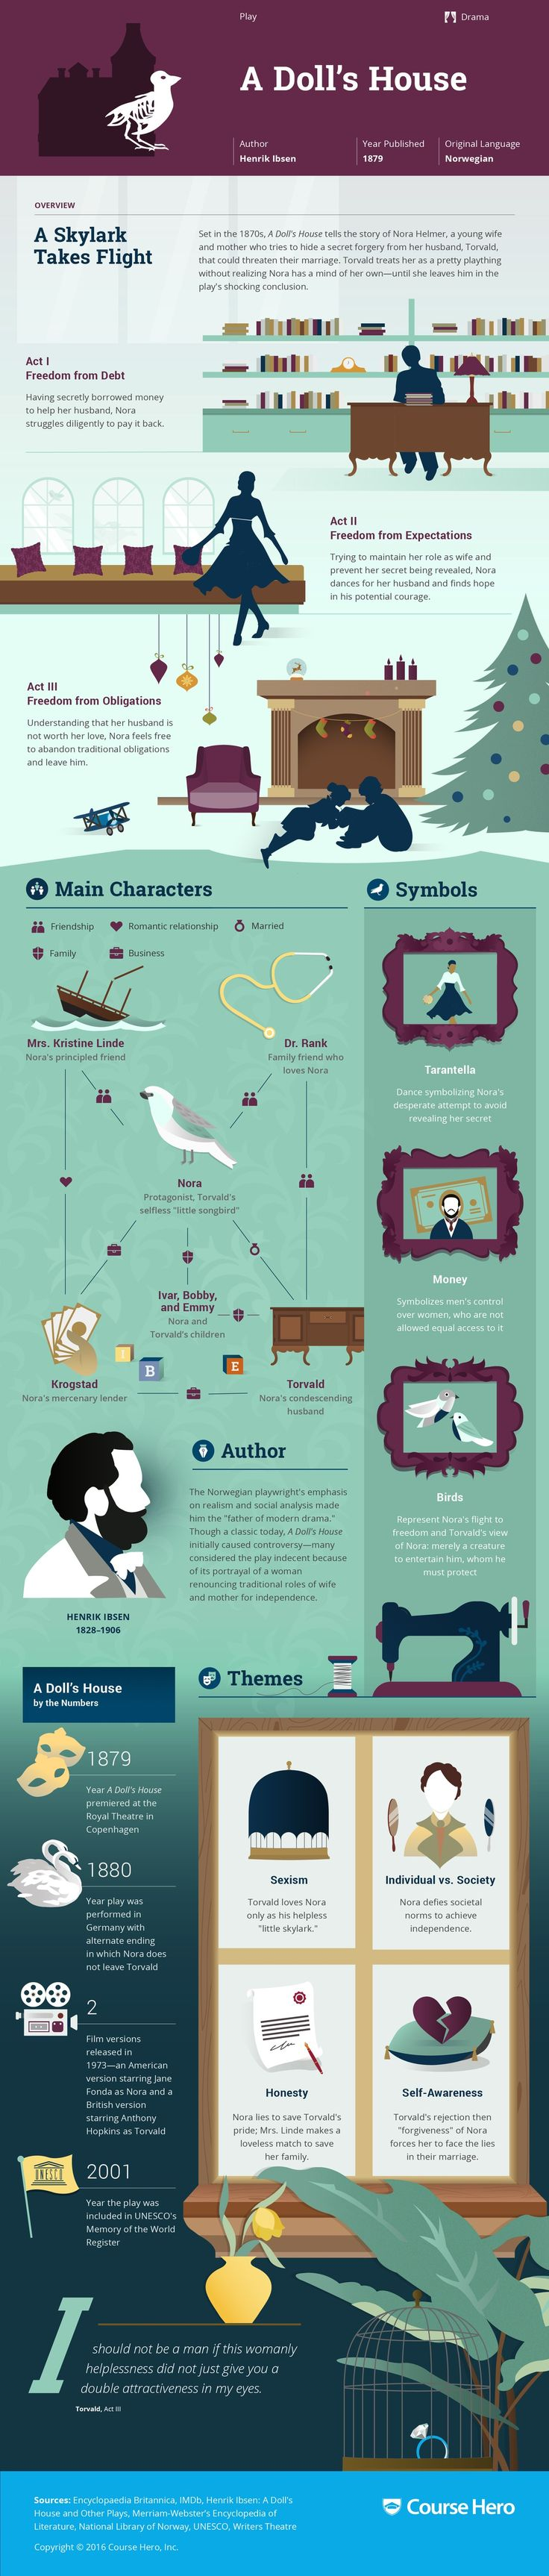 A Doll's House Infographic   Course Hero